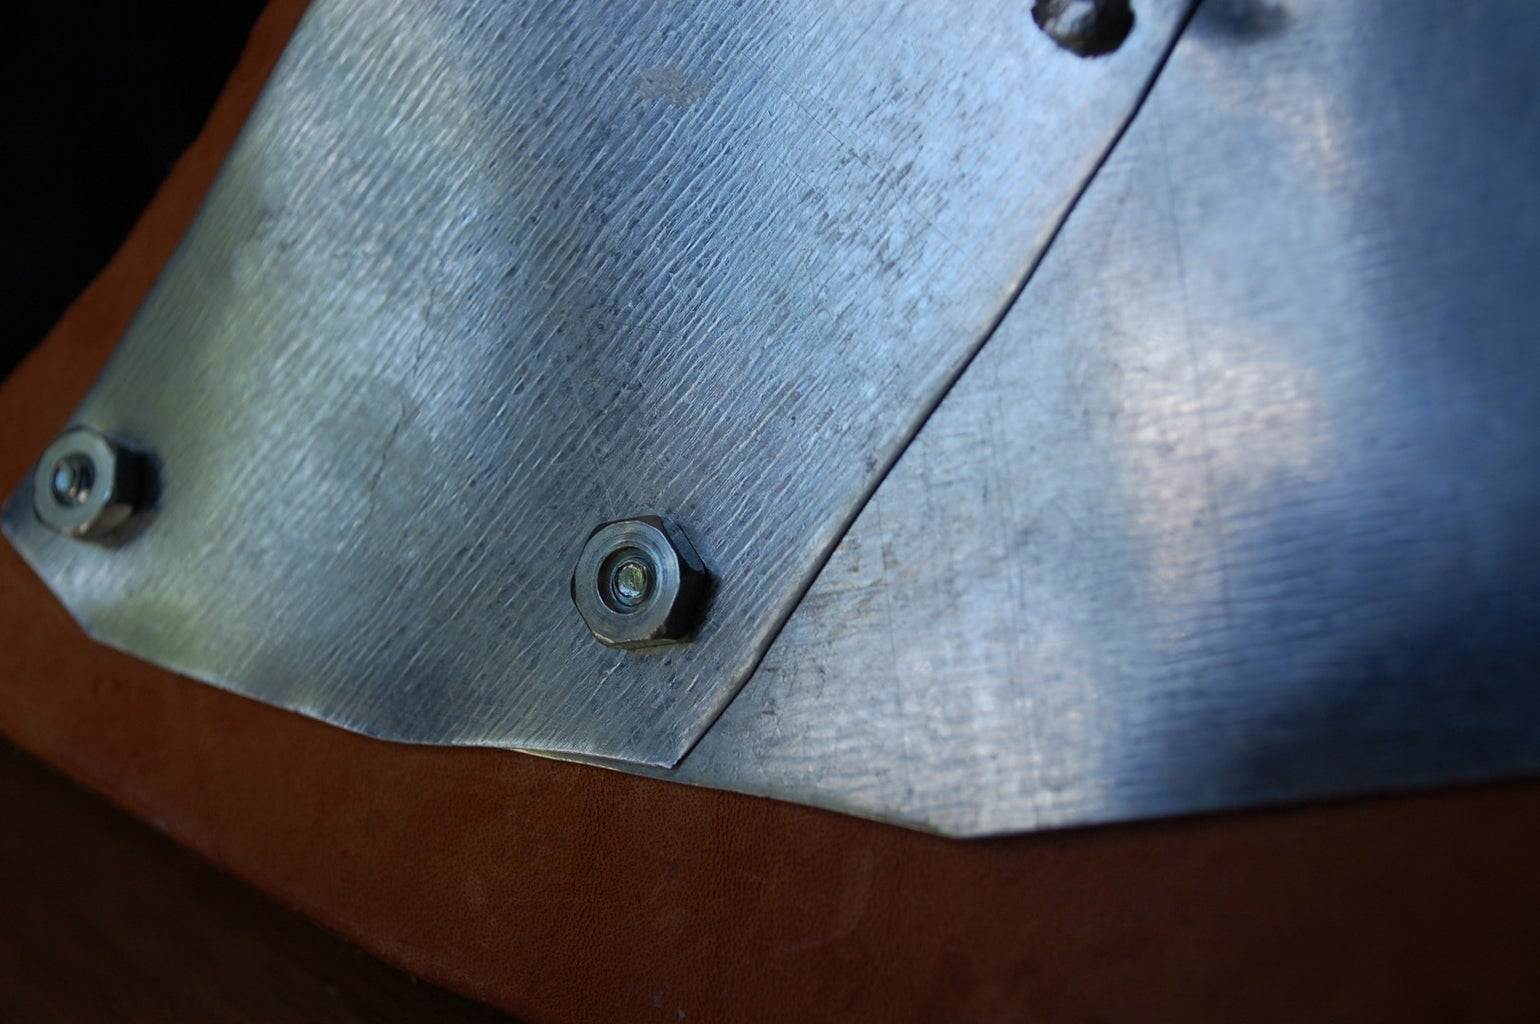 Attaching the Metal to the Leather